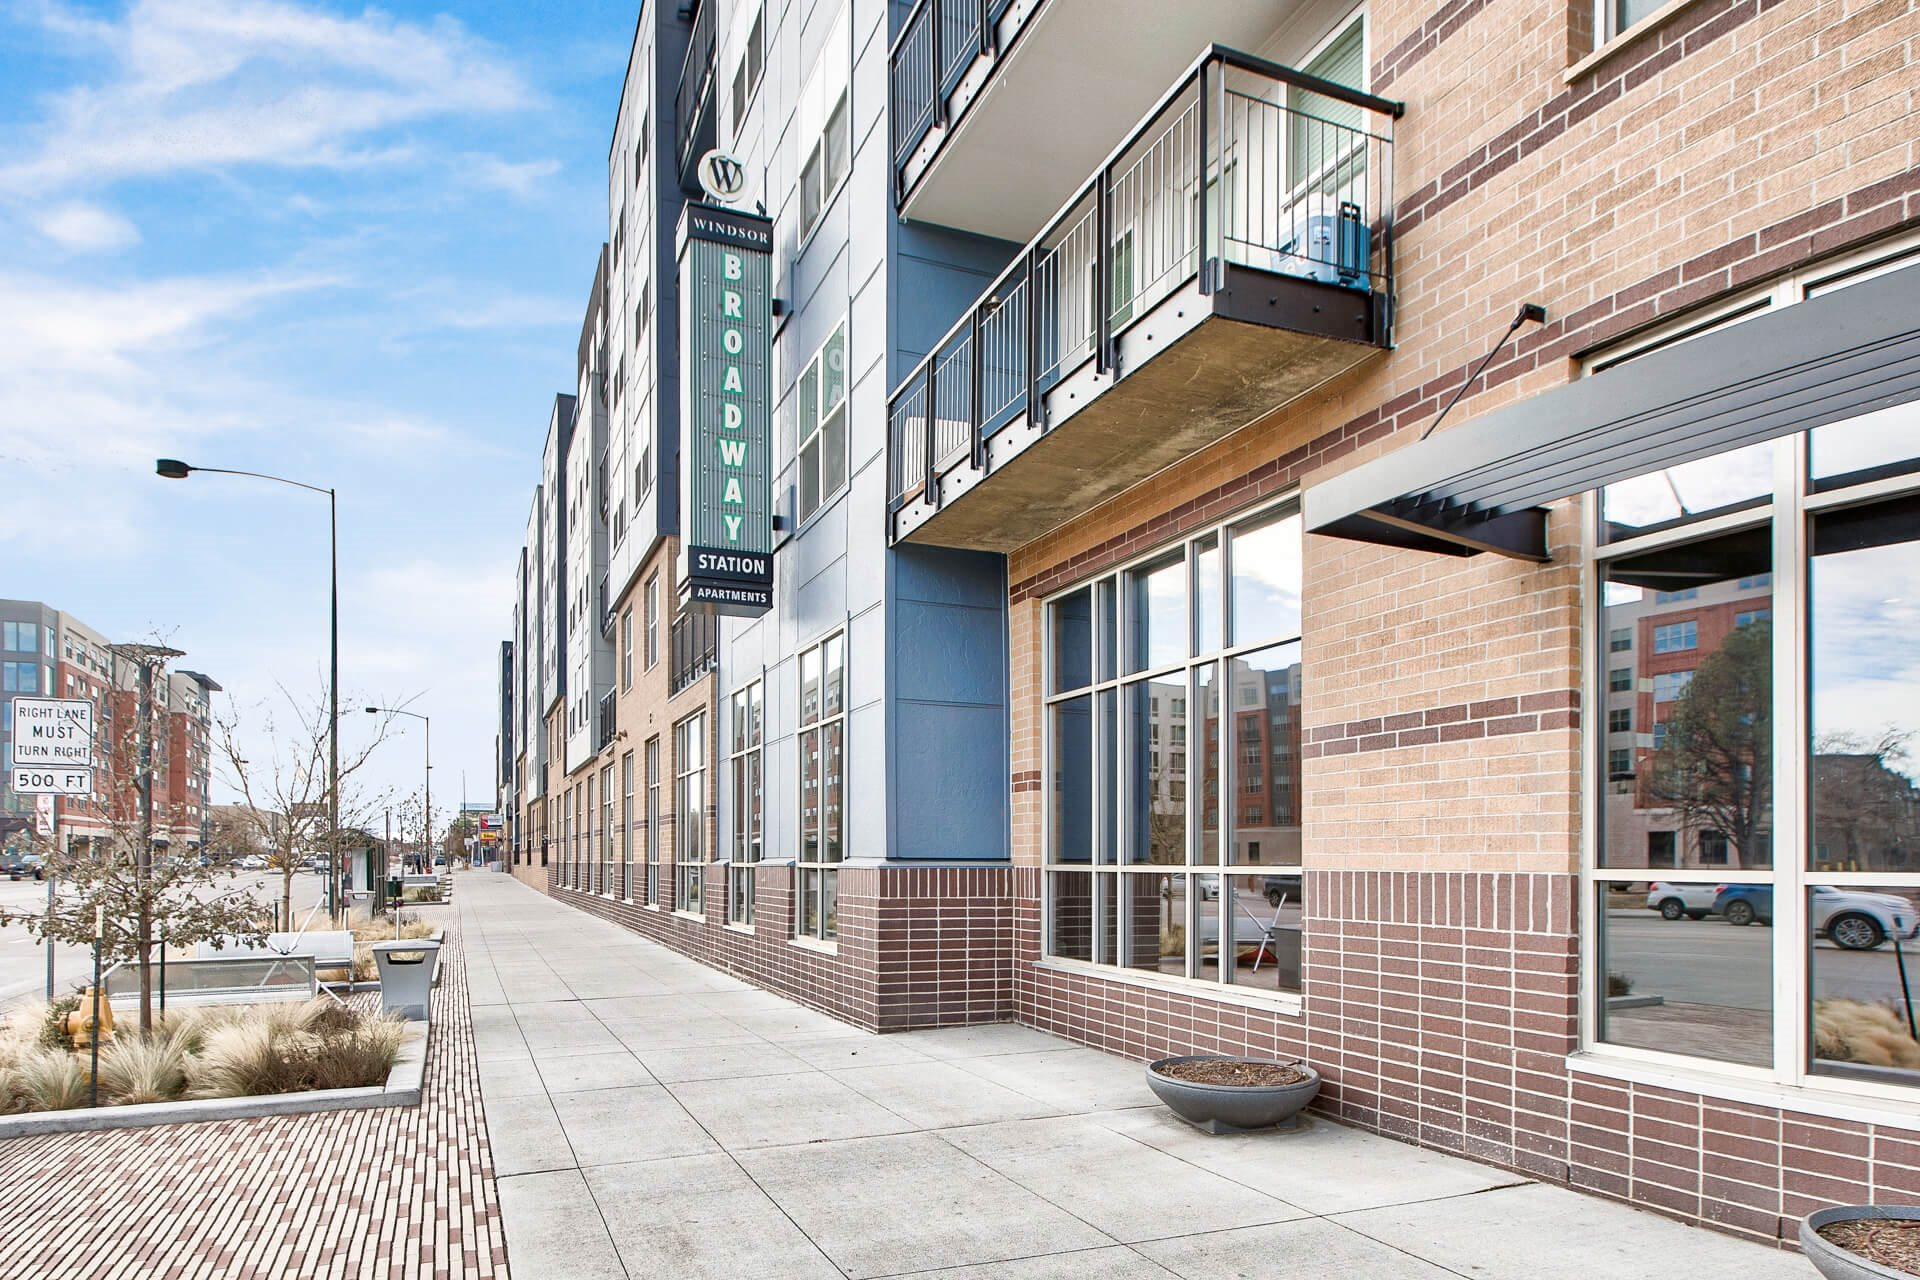 Large Leasing Office Open 7 Days a Week at Windsor at Broadway Station, Denver, Colorado